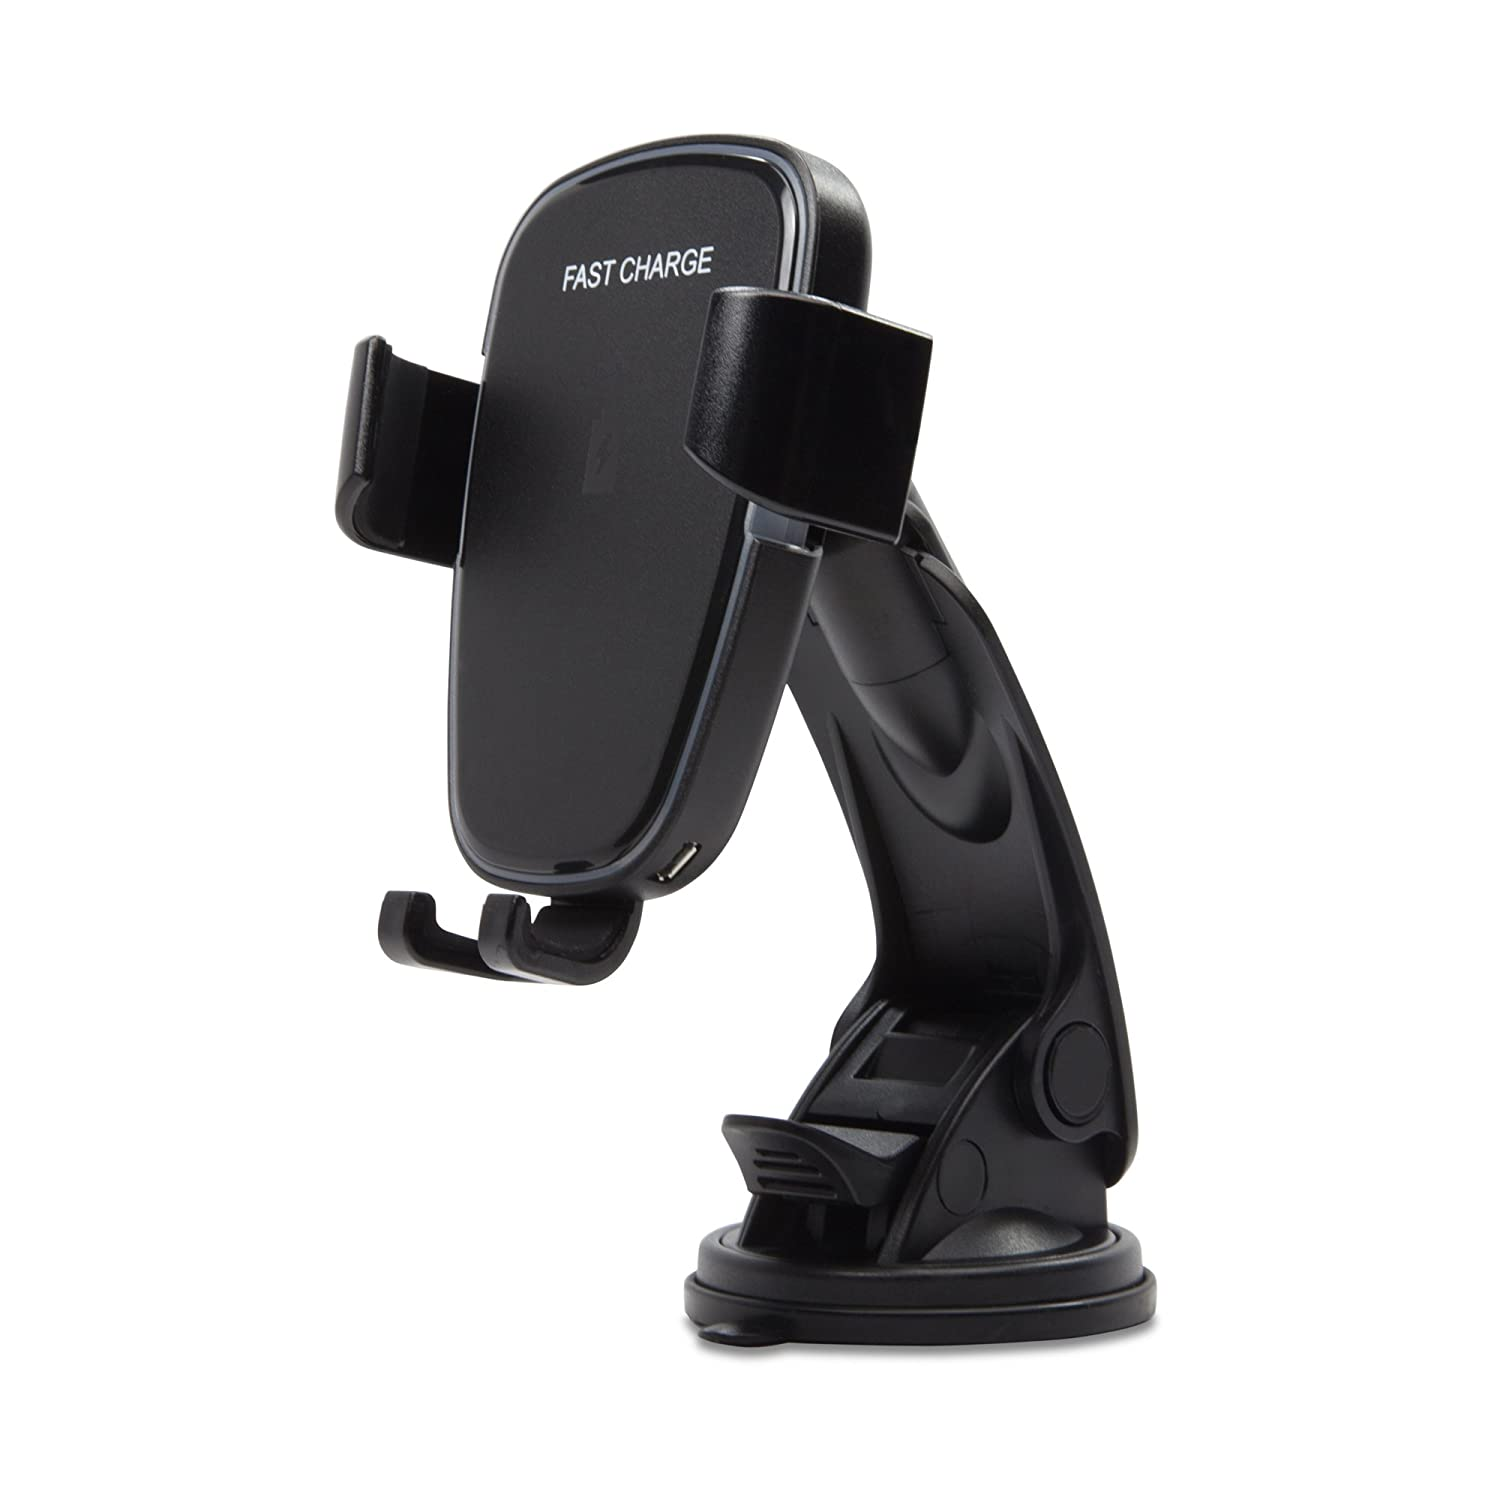 BoxWave Car Charger, for Smartphones and Tablets Universal Car Mount with Wireless Charging Jet Black BoxWave Corporation bw-1649-0-10966